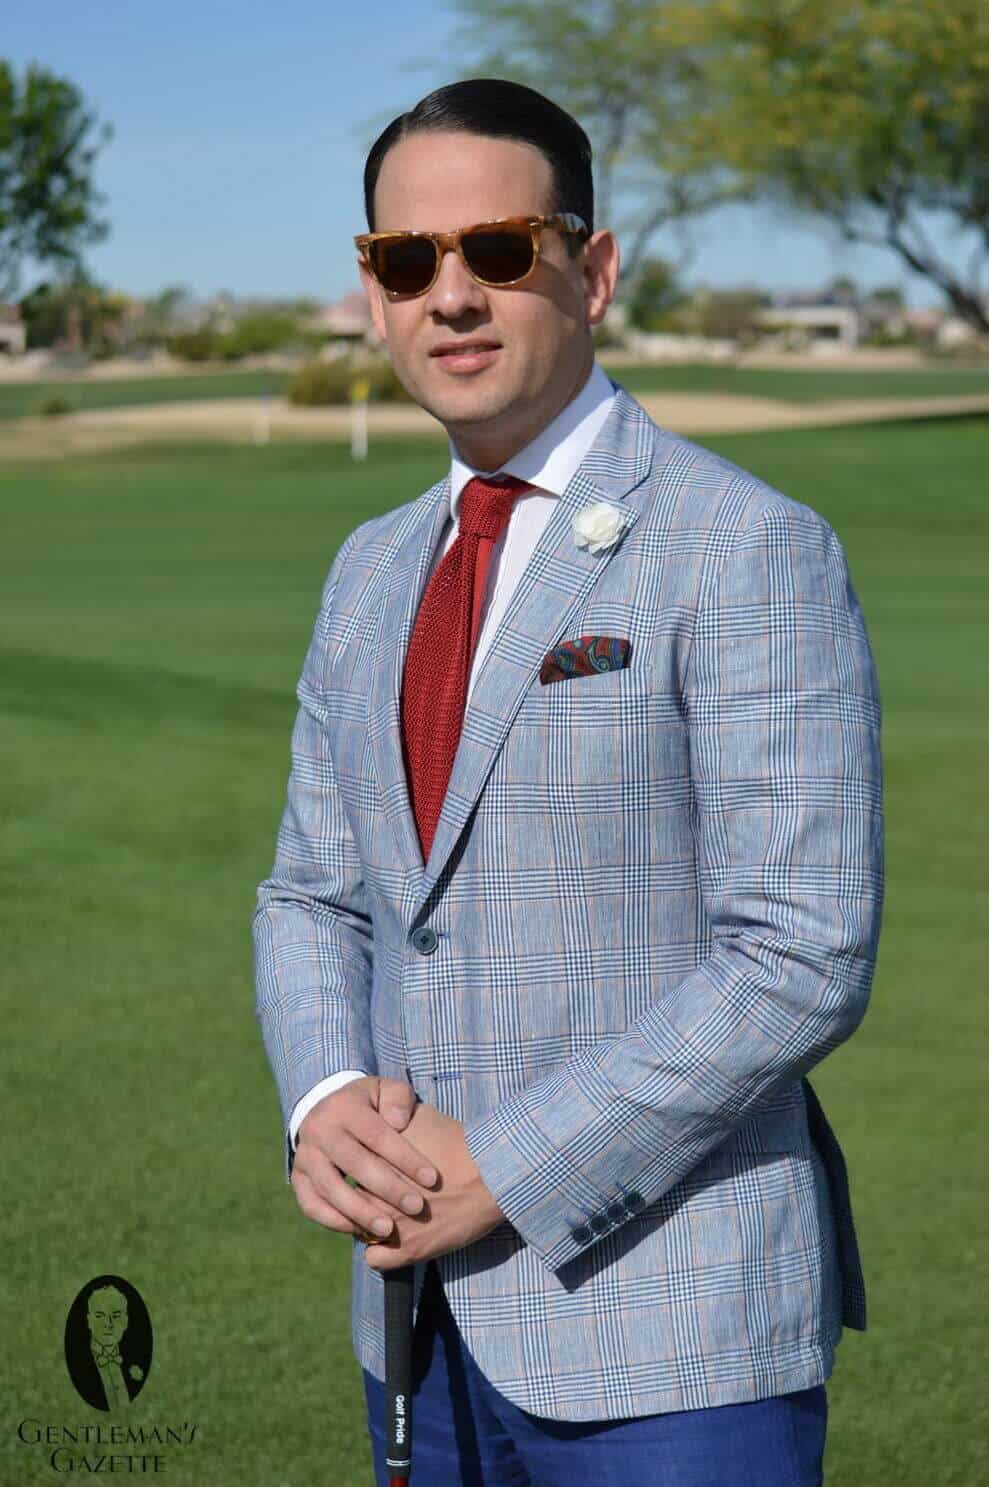 8 Secrets Of A Lightweight Summer Sport Coat — Gentleman's Gazette